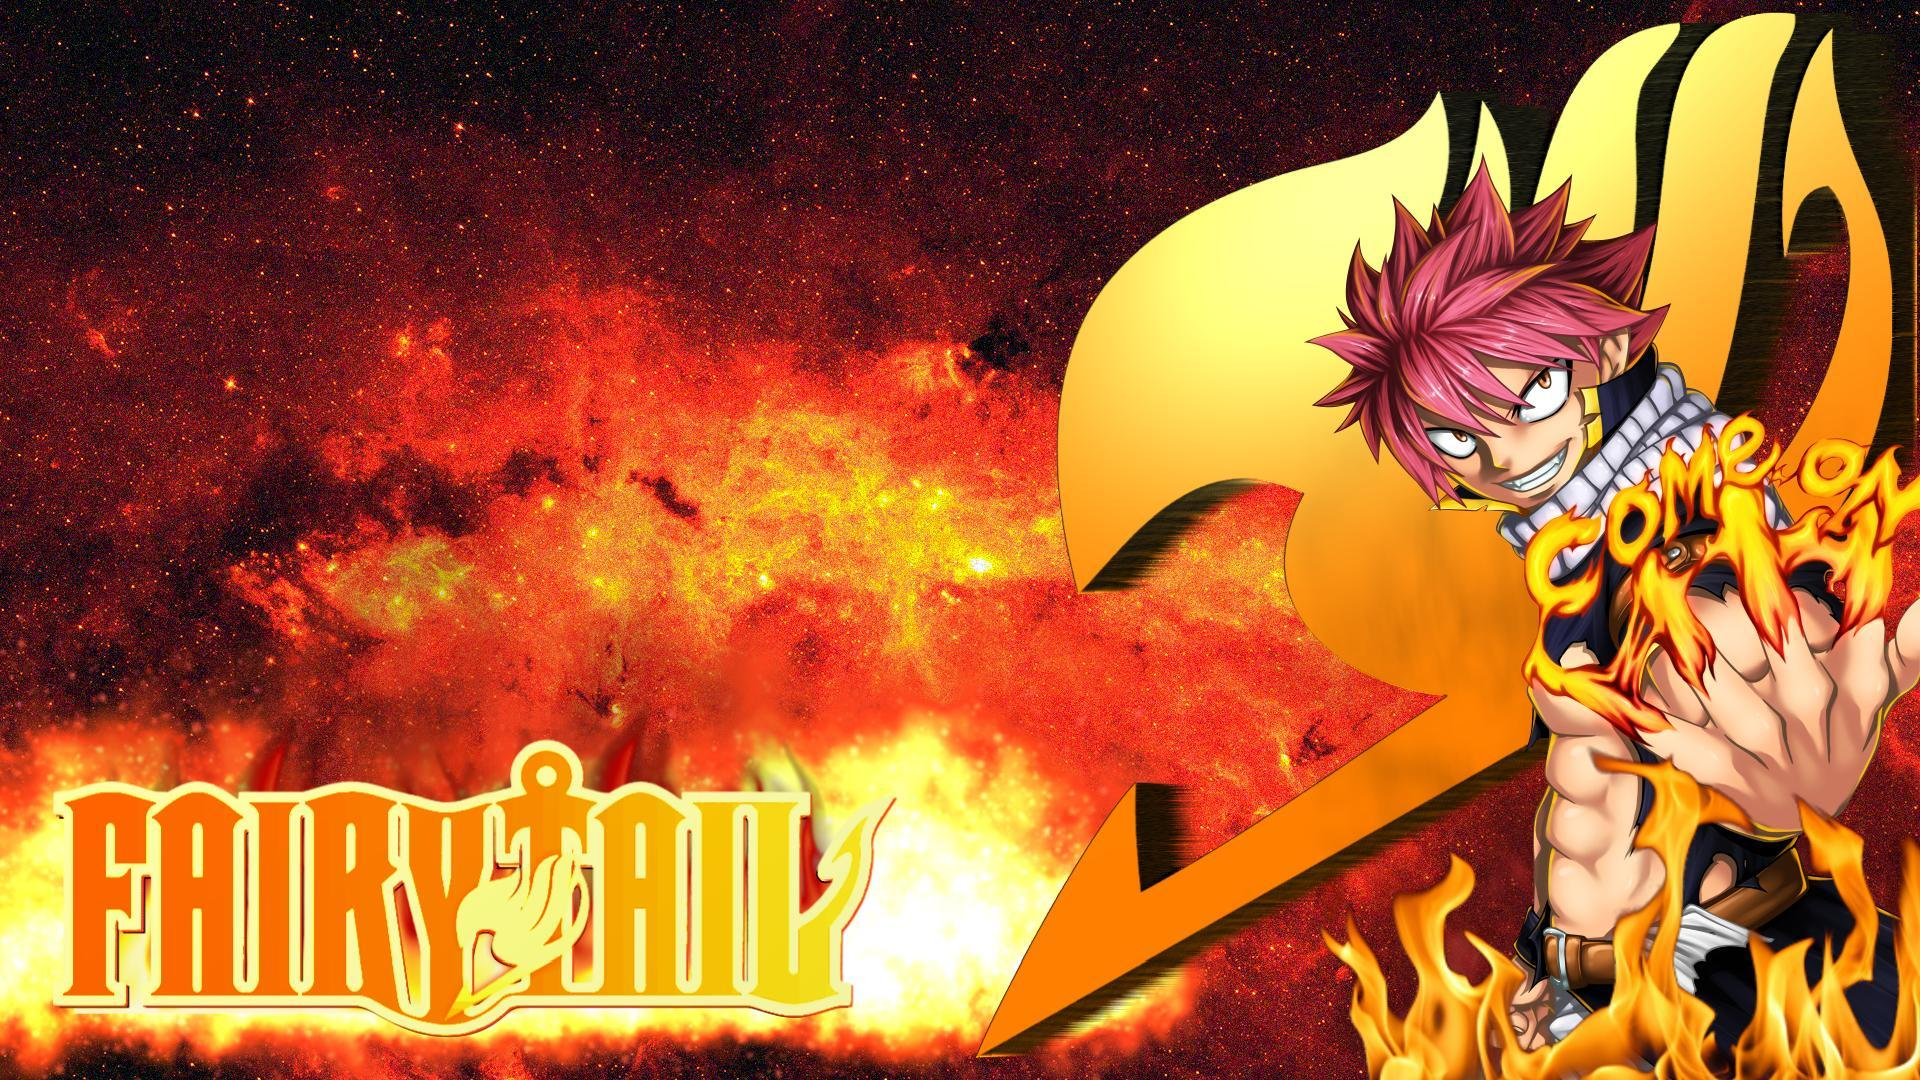 Fairy Tail Wallpapers Natsu - Wallpaper Cave